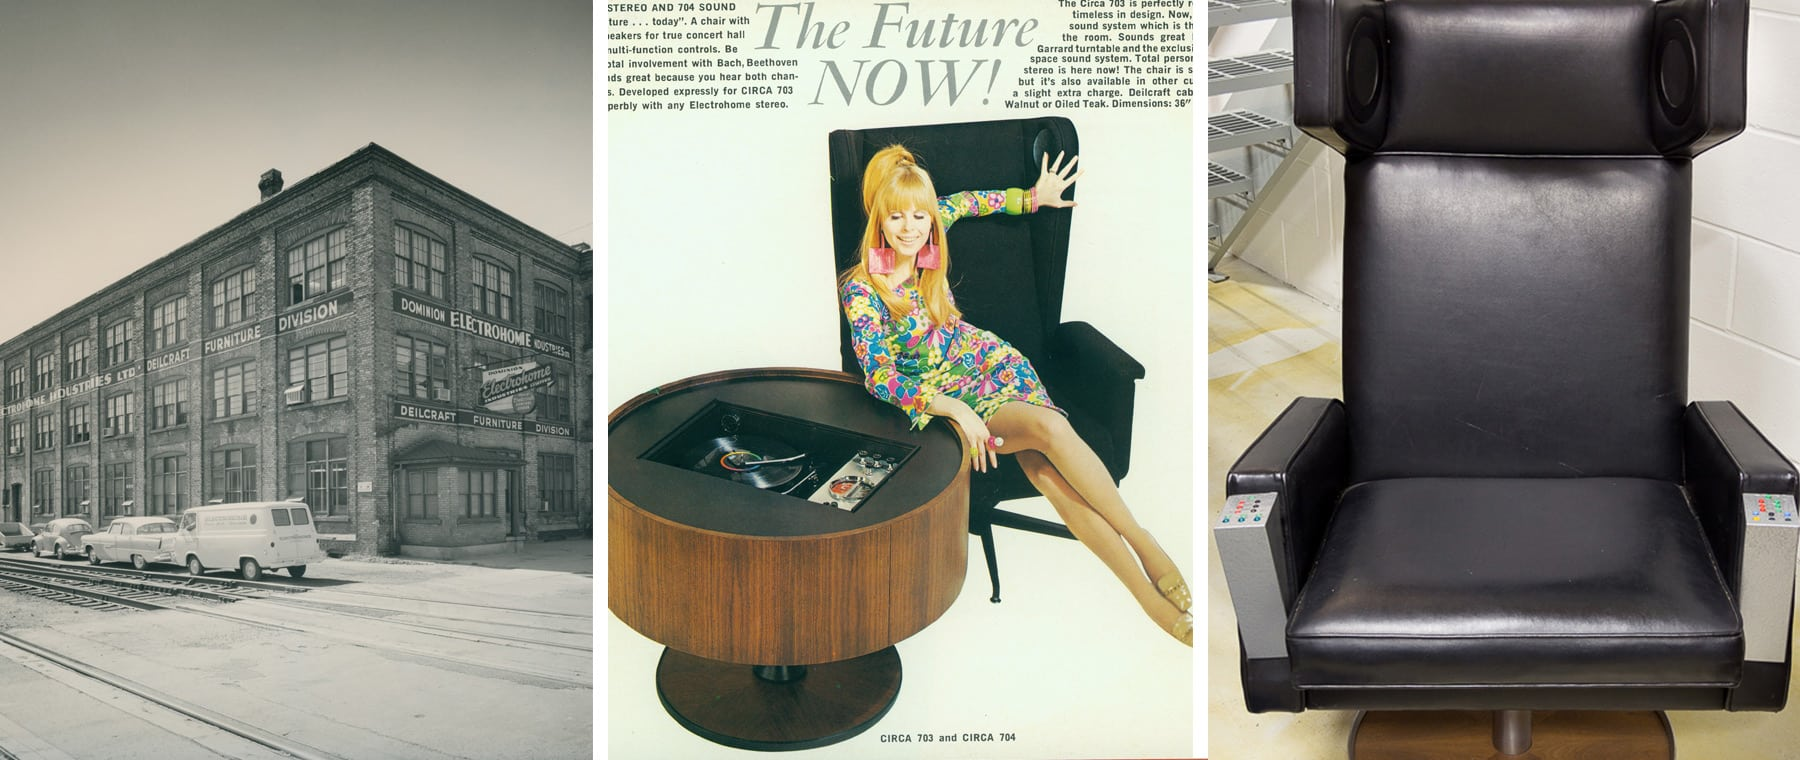 "In its heyday the Deilcraft plants employed 4,400 workers in Kitchener, Waterloo, and Cambridge; described in the ad as ""timeless design,"" the stereo was very much of its era — when North Americans were envisaging a space-age future, including the chair"